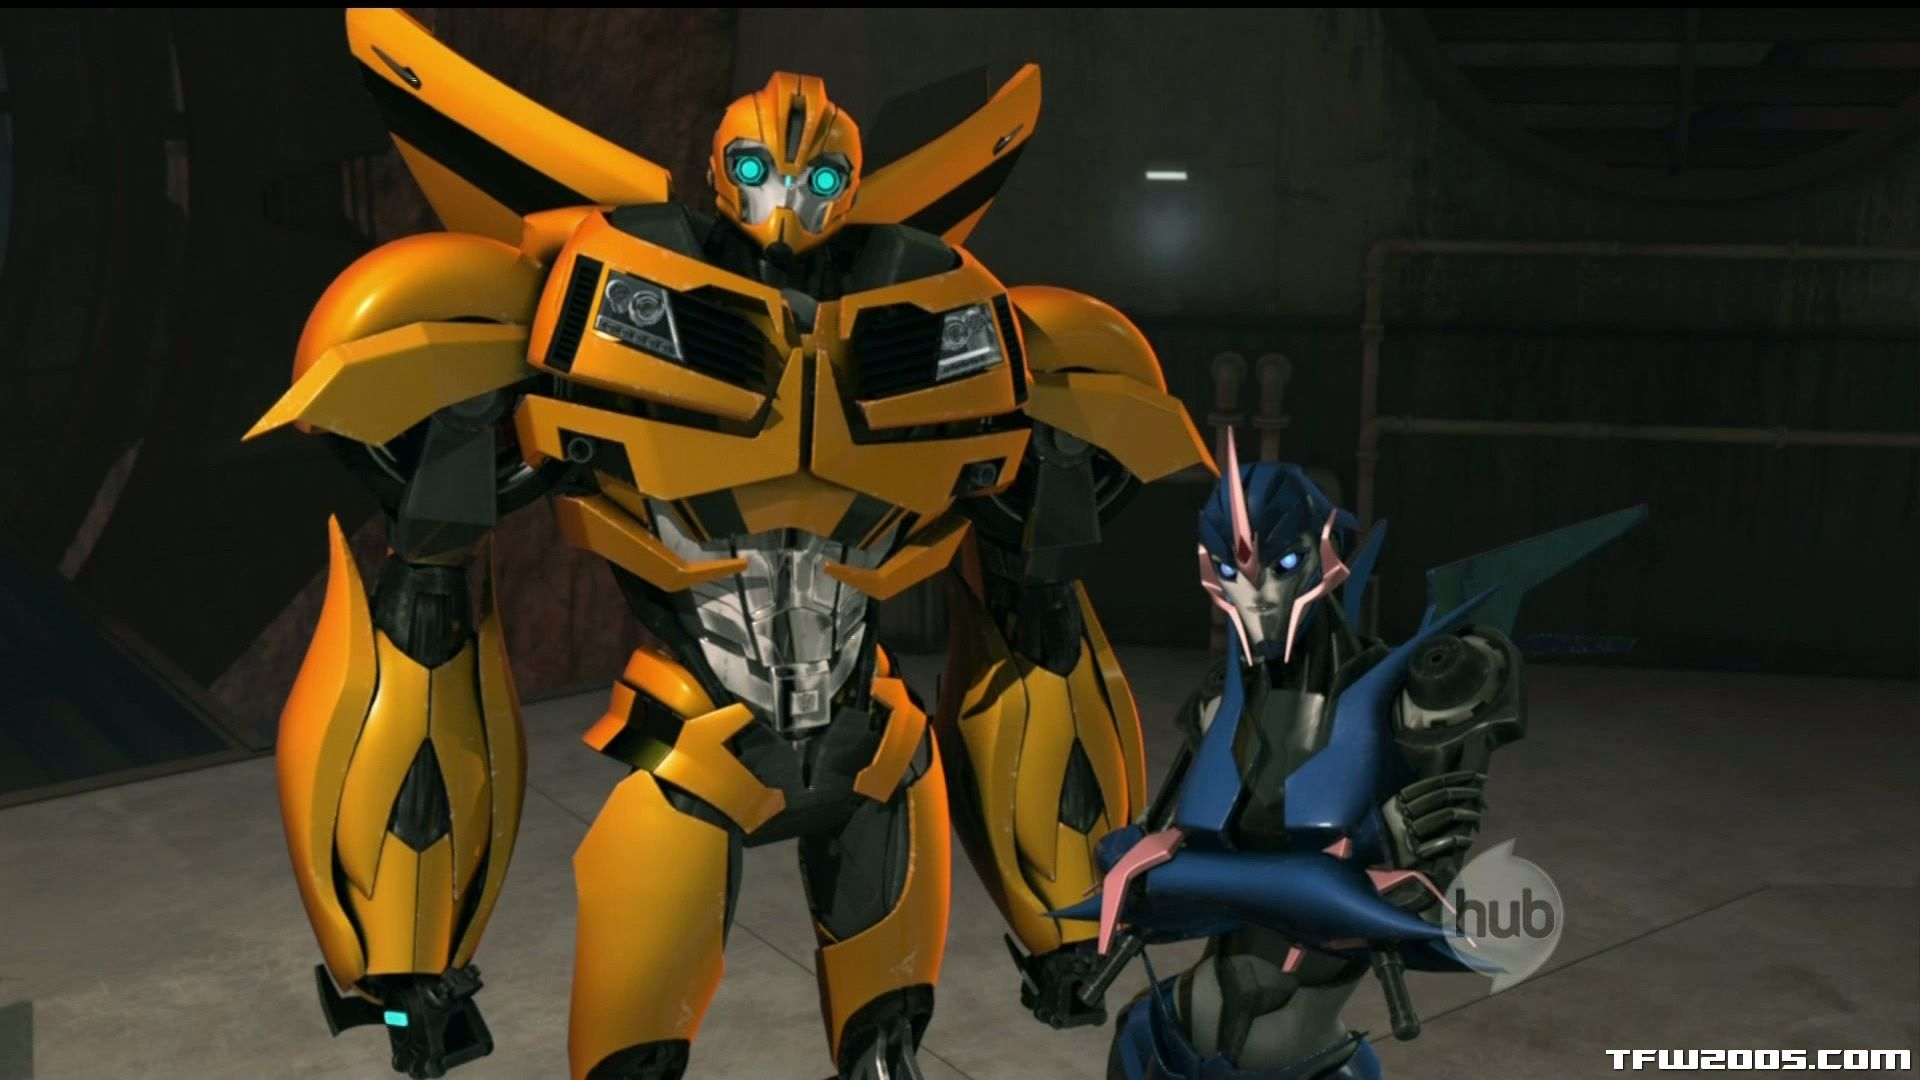 transformers prime pictures | Transformers-Prime-002-014 ...